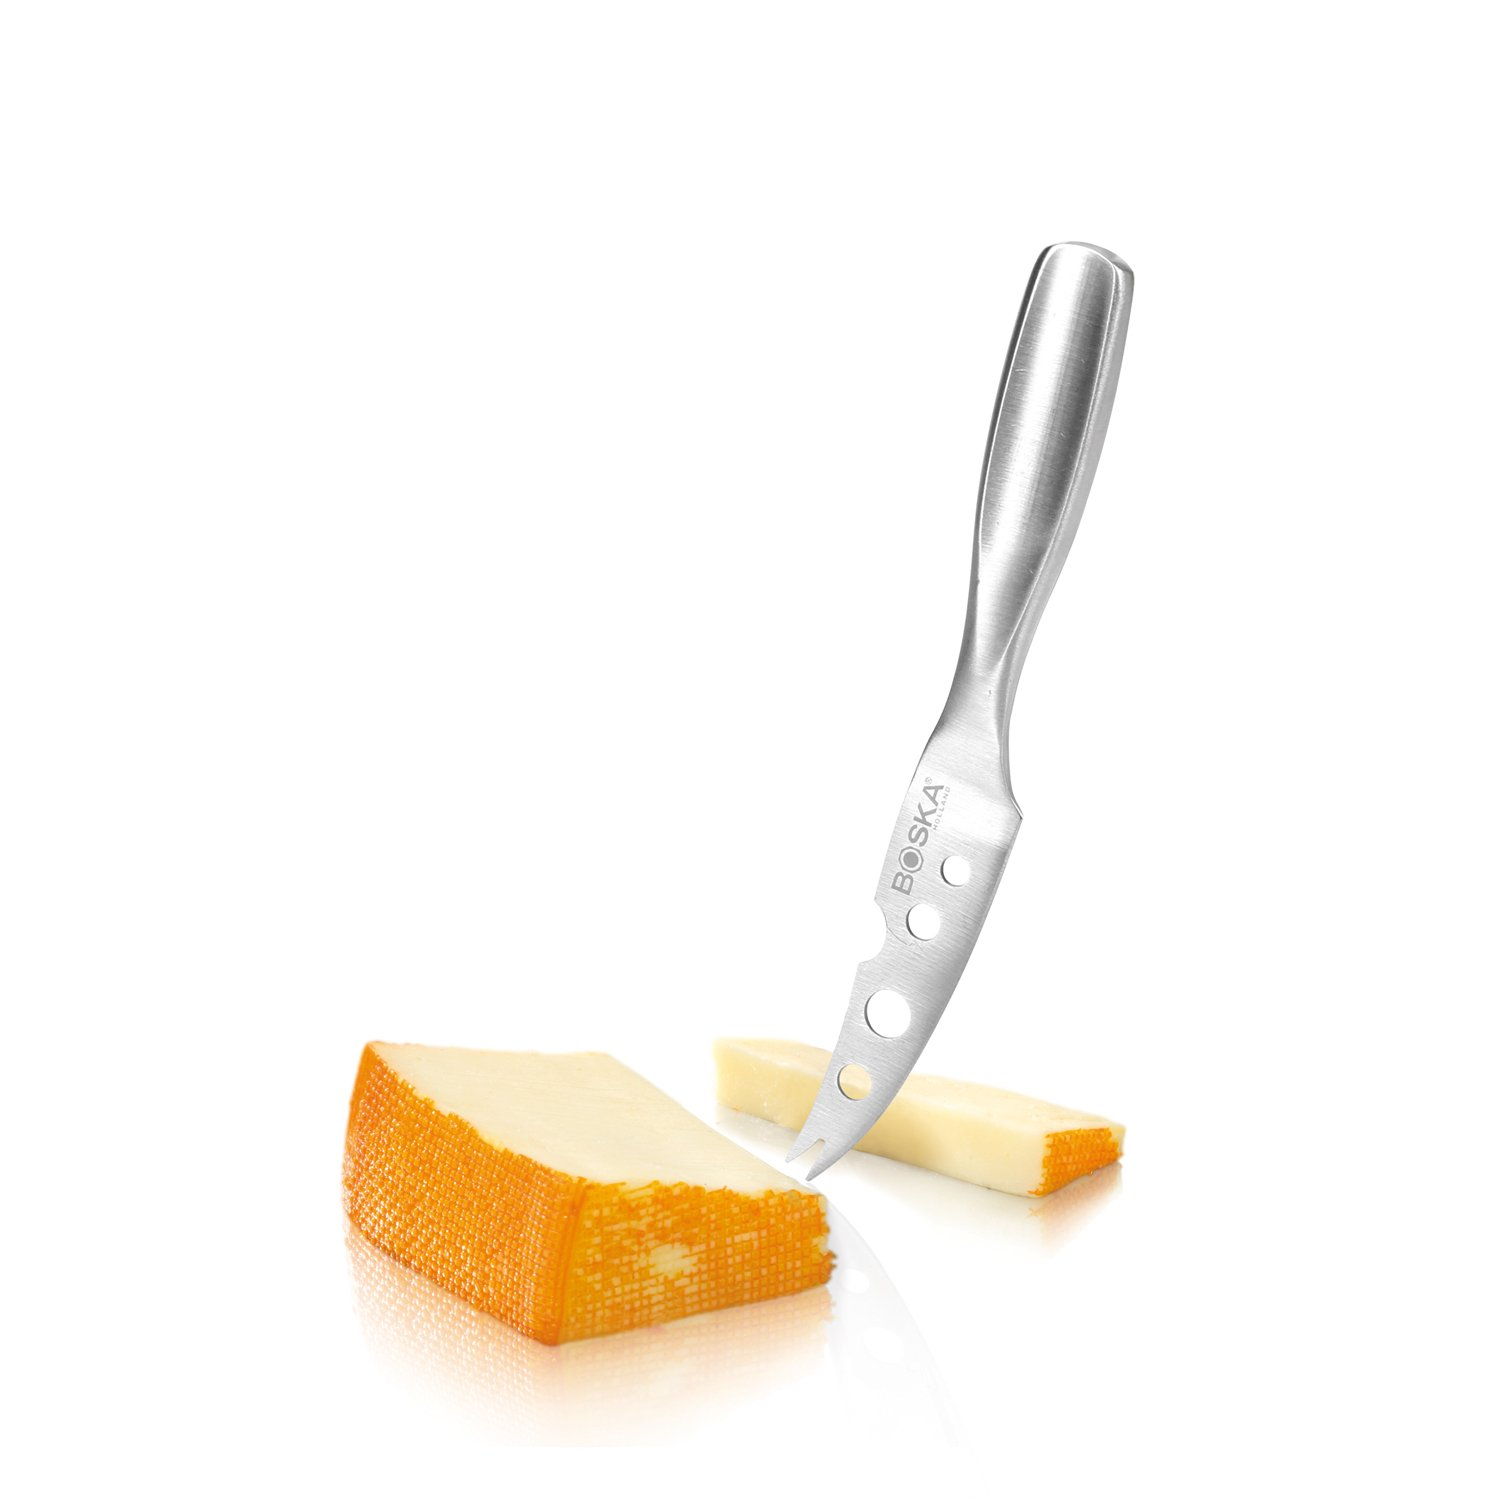 Boska Holland Stainless Steel Mini Cheese Slicer and Plane, Flex Blade, 10 Year Guarantee, Monaco Collection 307066